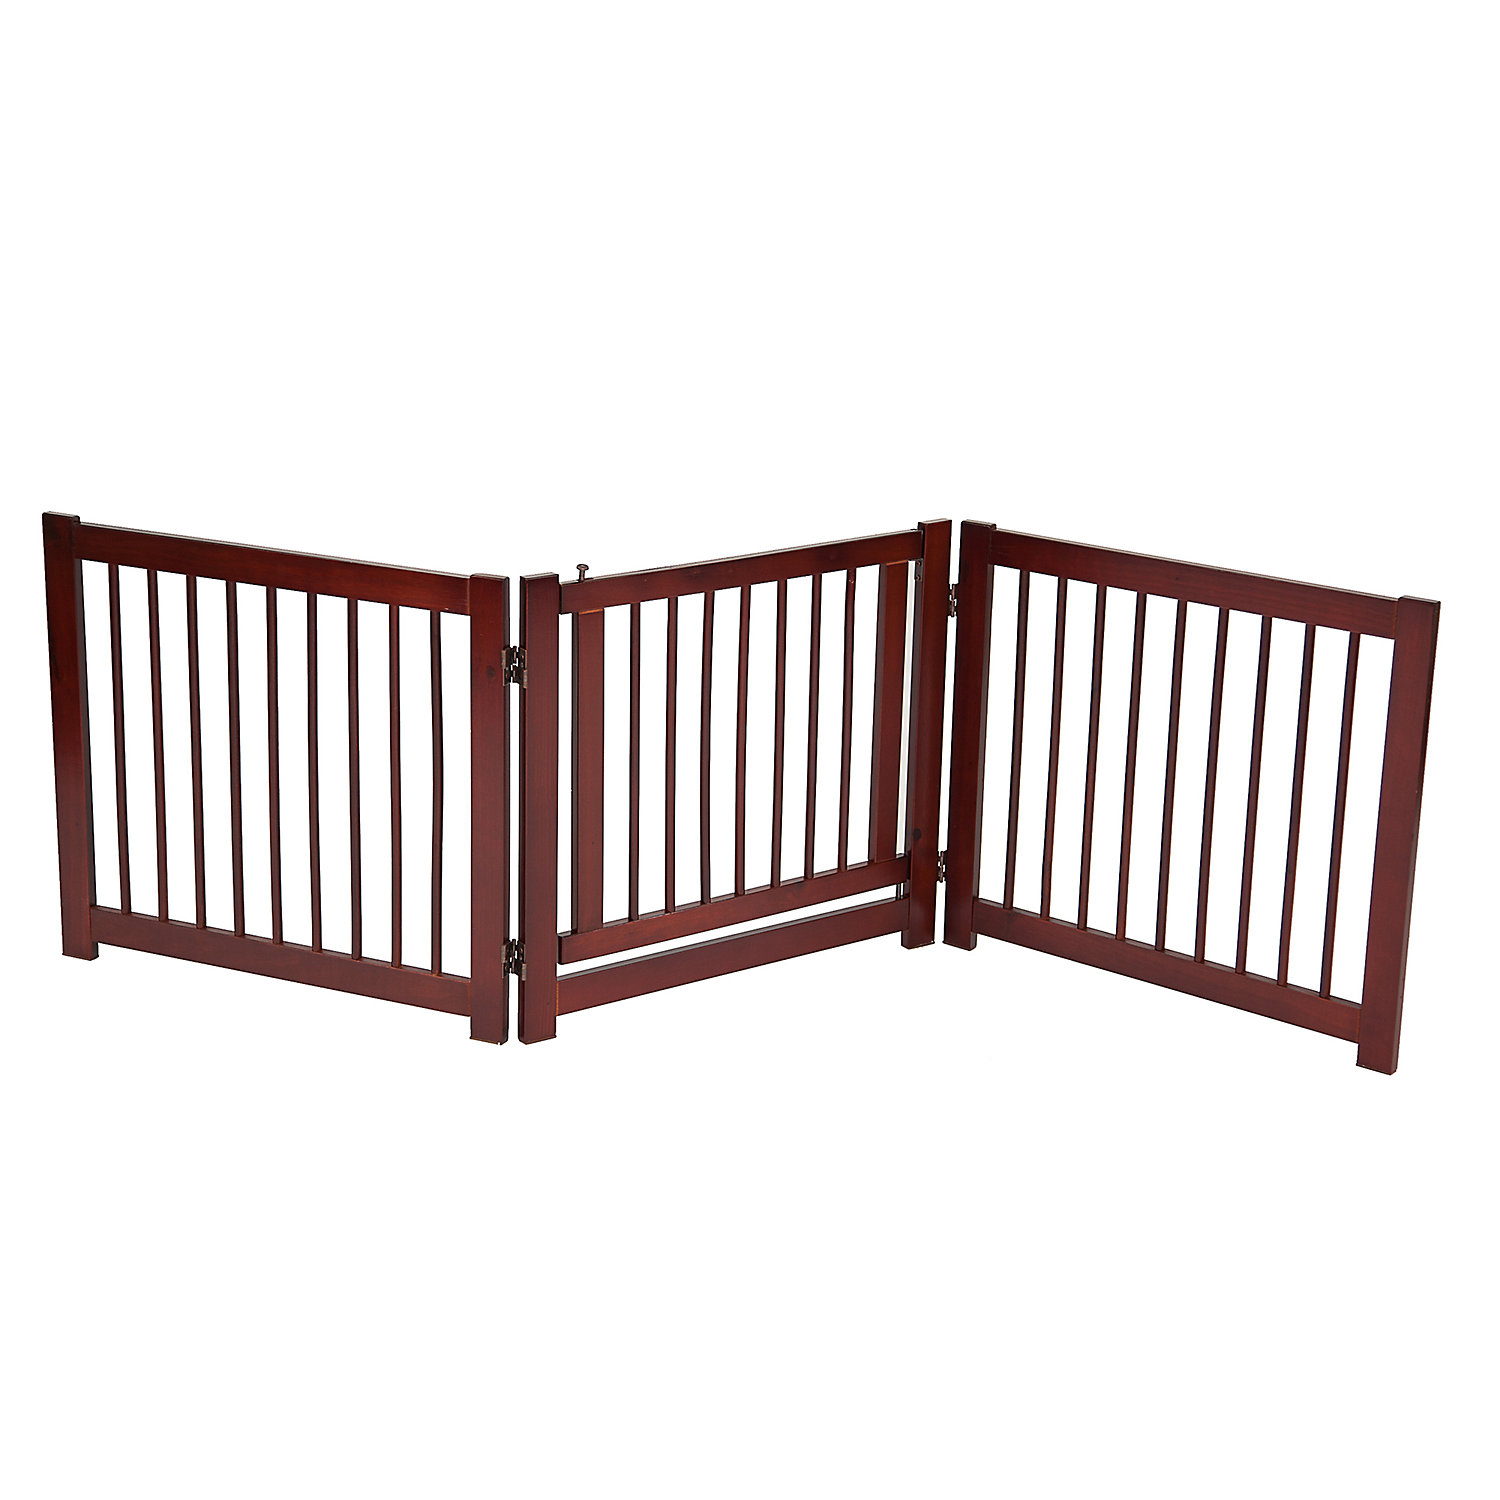 Primetime Petz 360 degree Configurable Gate with Door